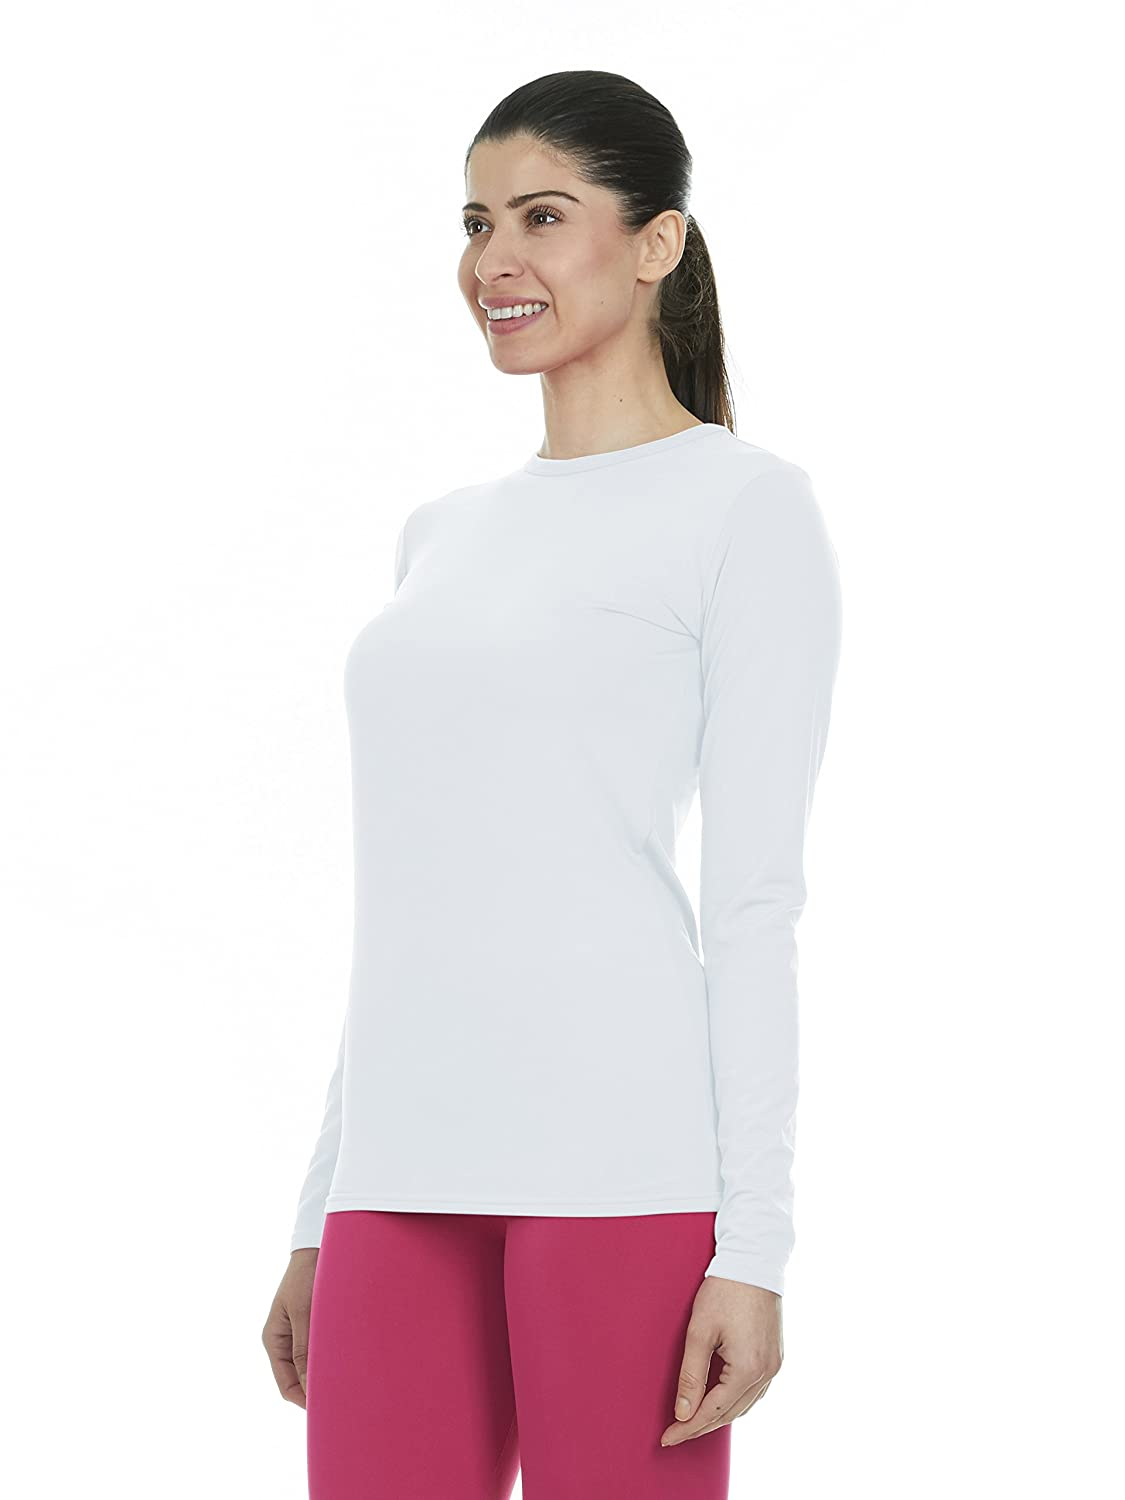 22c6ef43 Thermajane Womens Ultra Soft Thermal Underwear Shirt Compression Baselayer  Crew Neck Top Active Base Layers